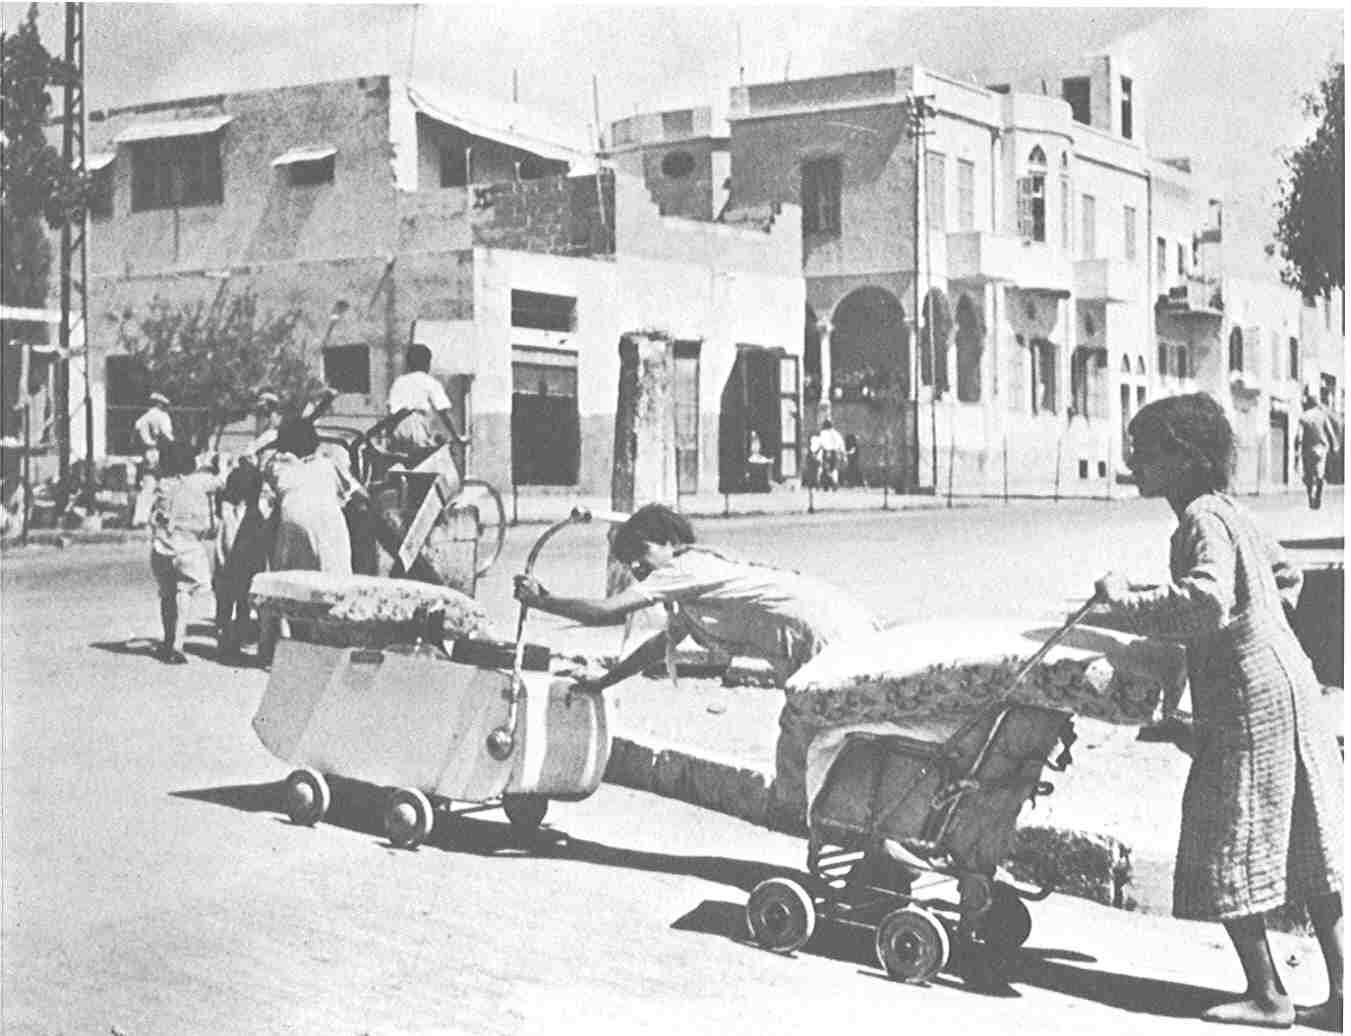 Jaffa - يافا : Jaffa's residents attempting to salvaging whatever they can as they being ethnically cleansed, May 1948. For many this was a difficult journey, and the majority never saw Jaffa again.